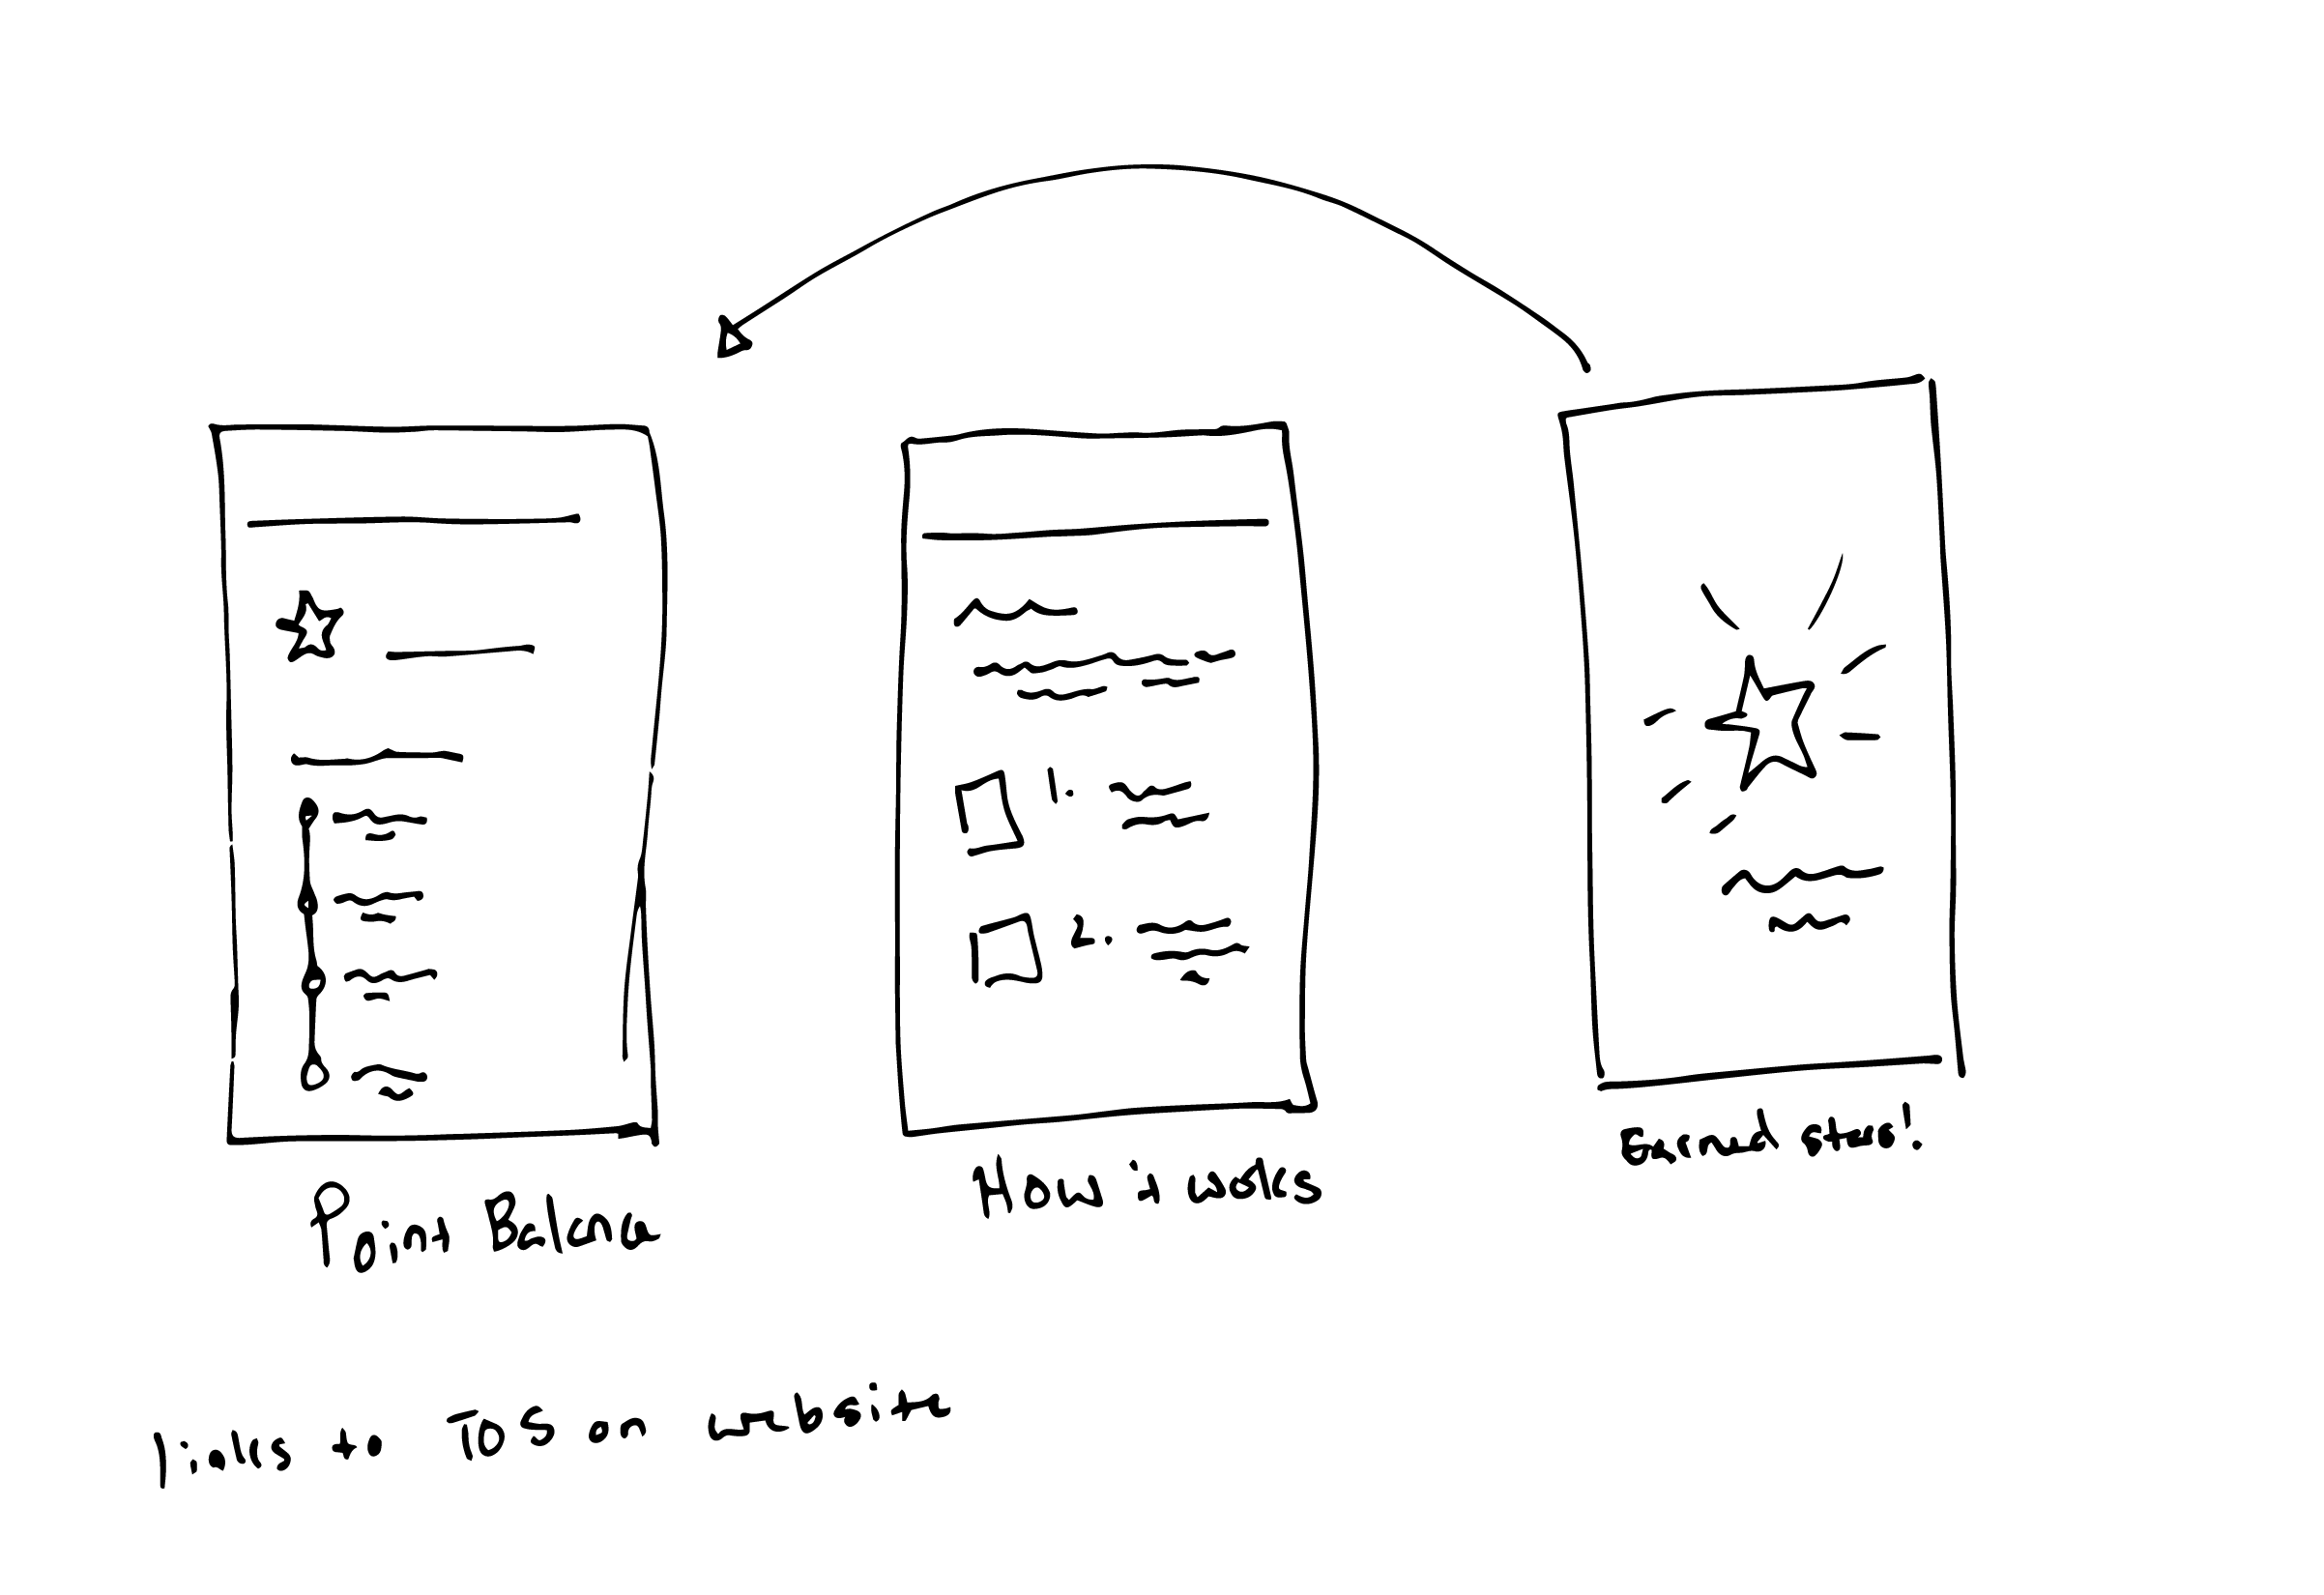 Sketch of the points system in the Starbucks app